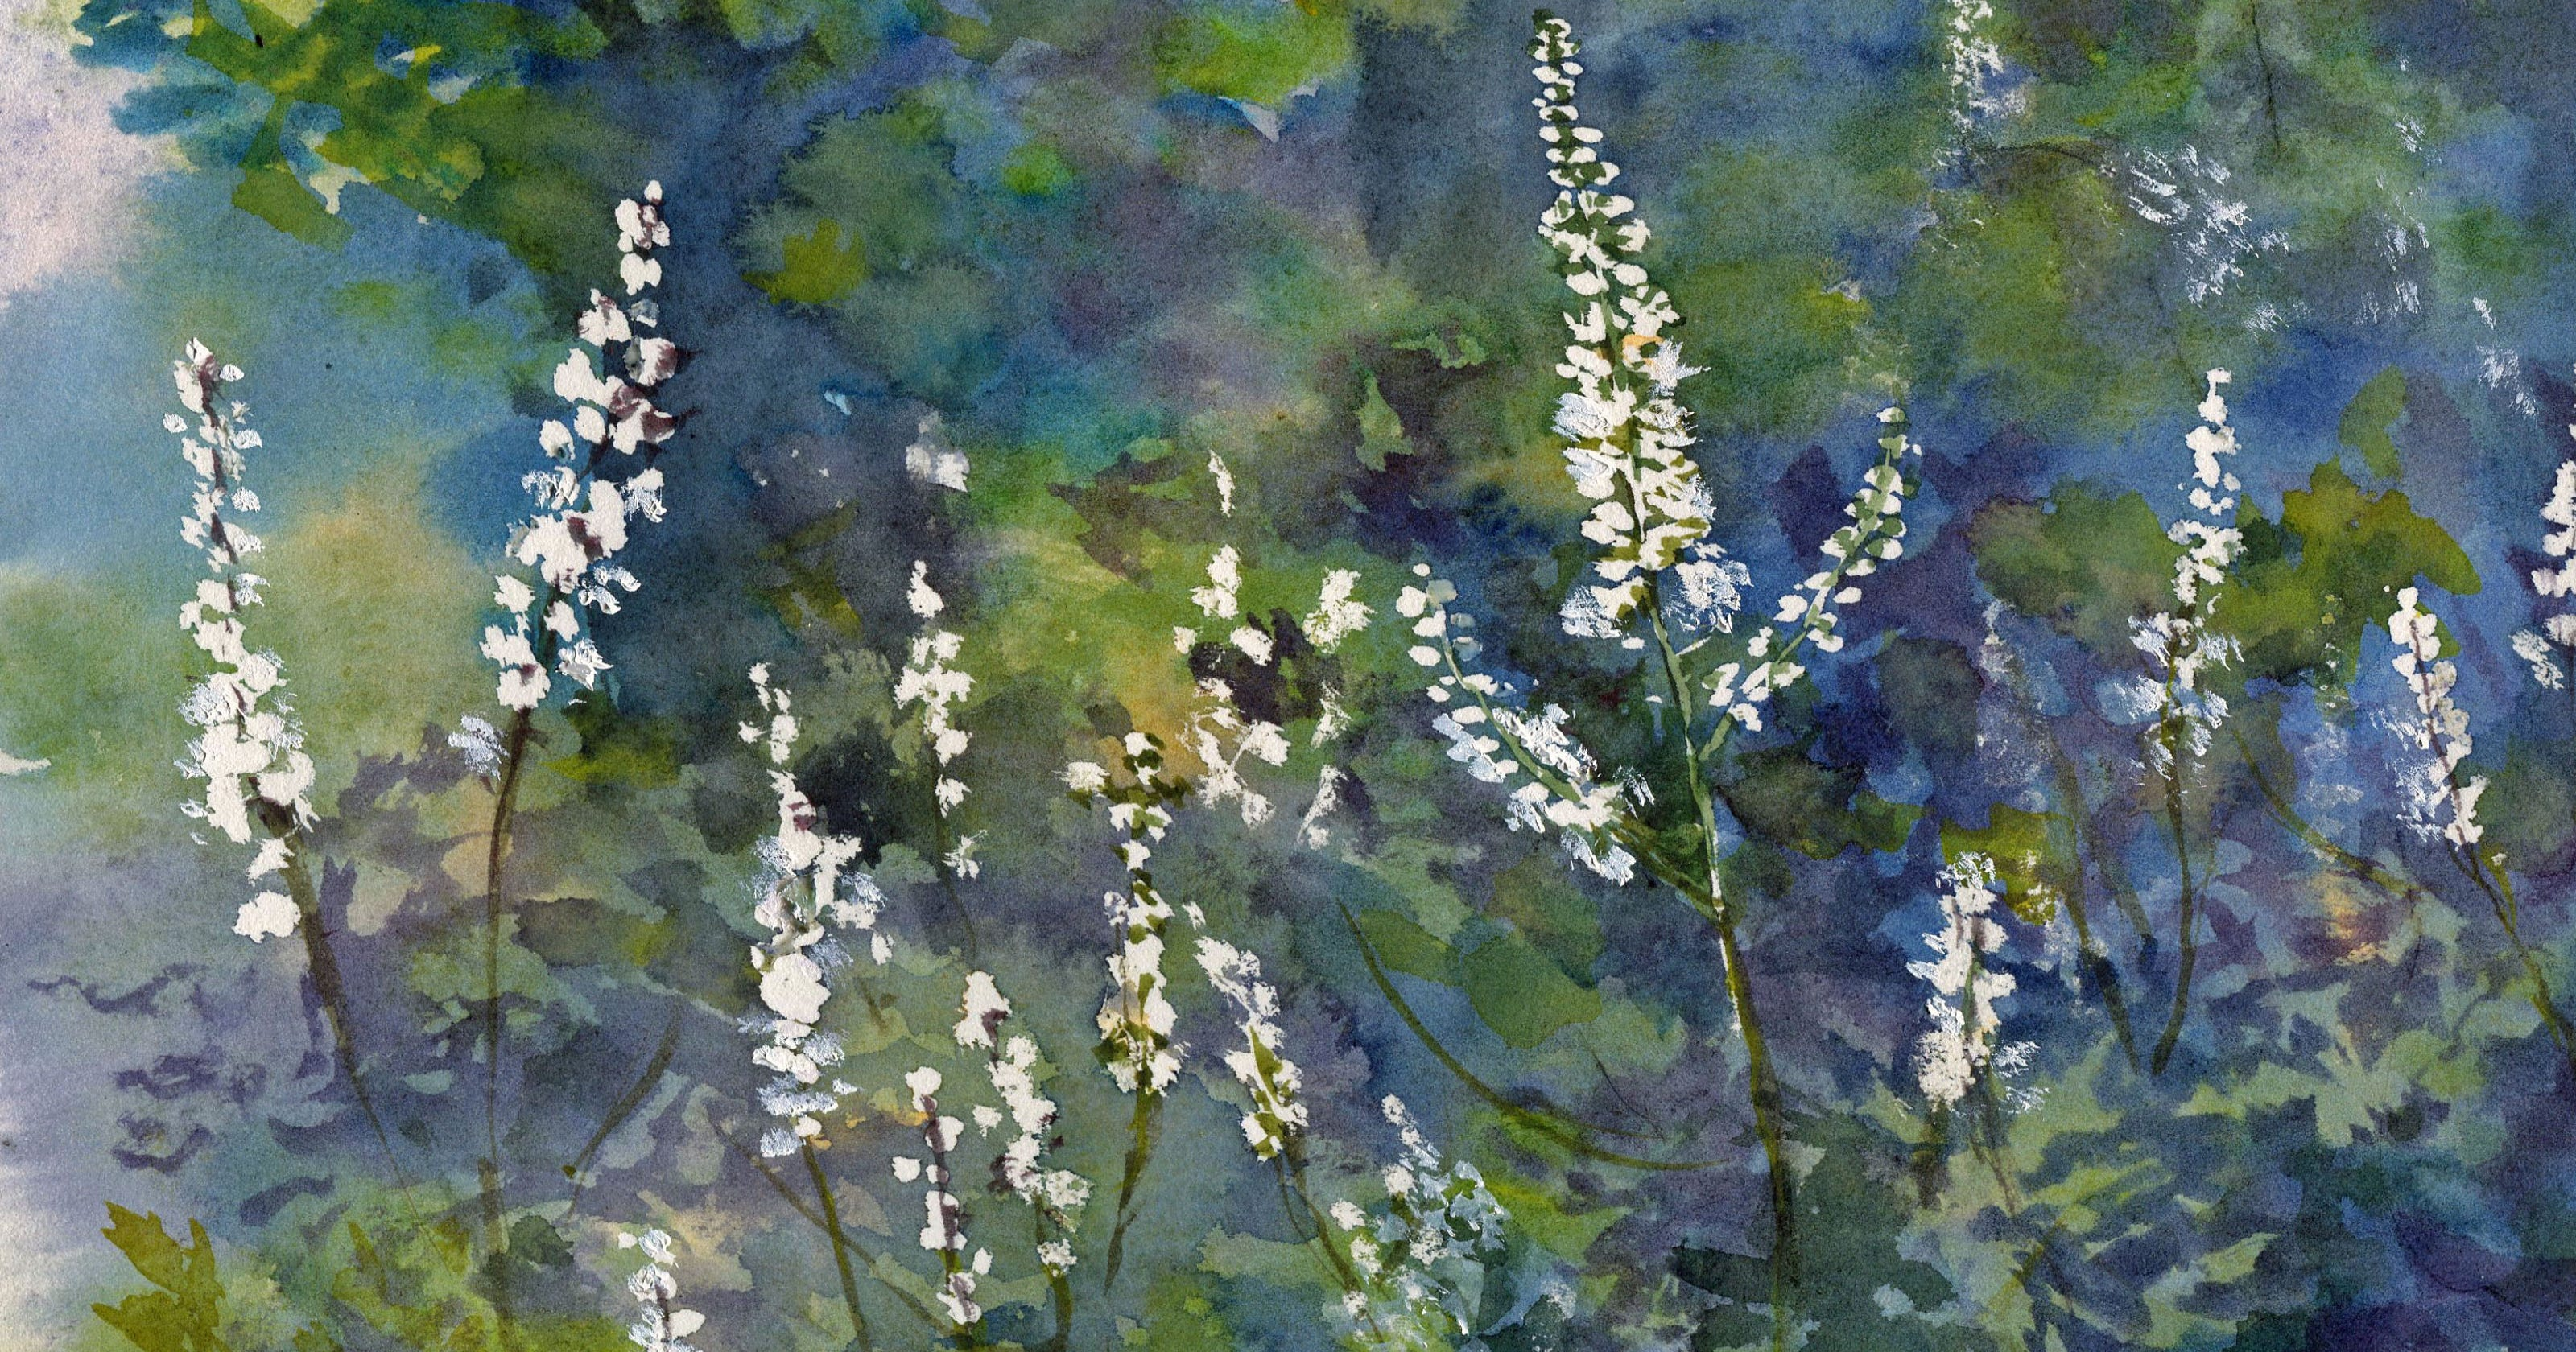 Nature Journal: Why scientists changed cohosh's name